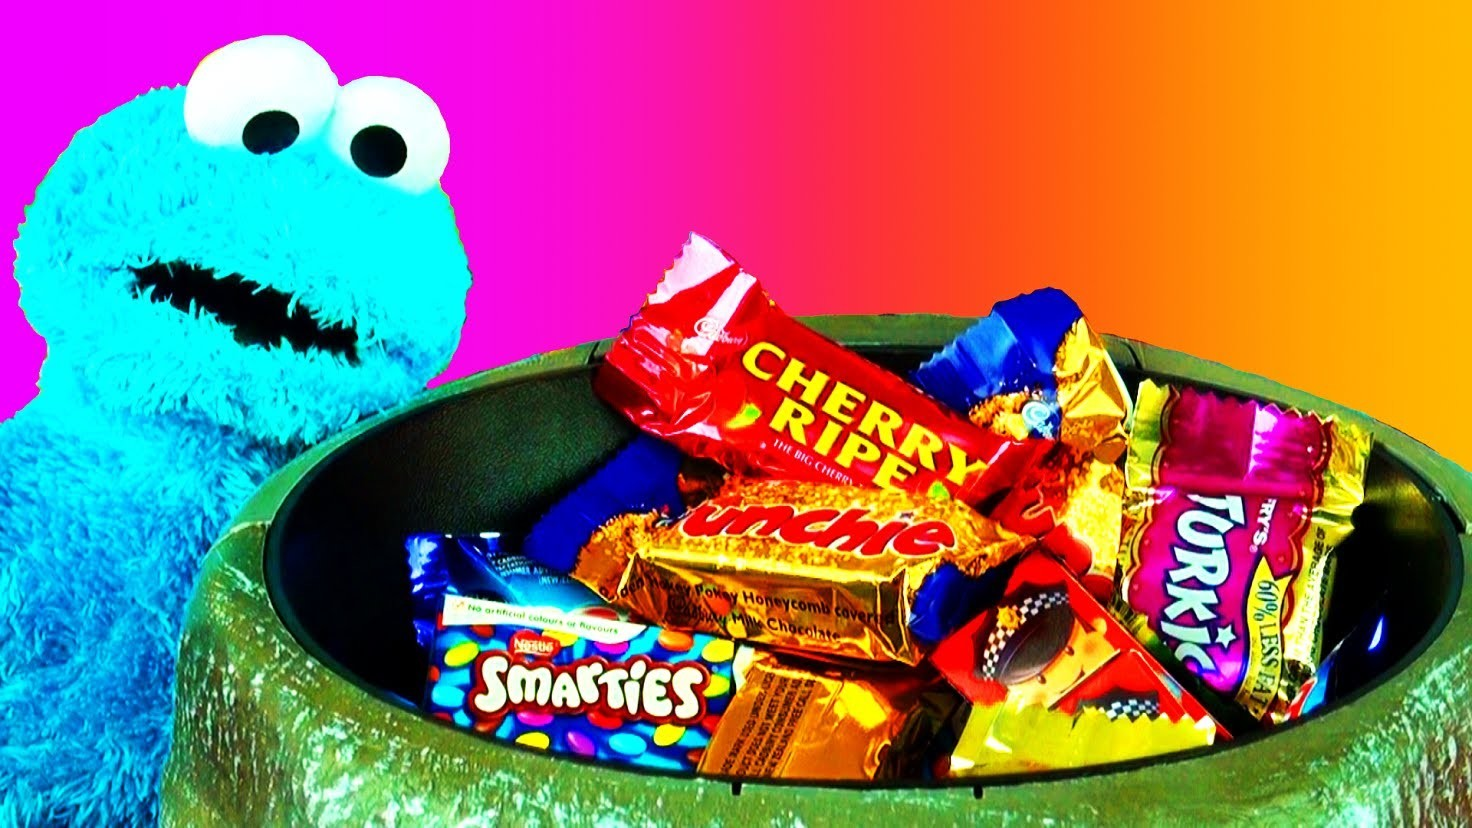 Halloween Scary Prank Candy Bowl Surprise Trick-or-treat with Cookie Monster Thomas & Friends 2013